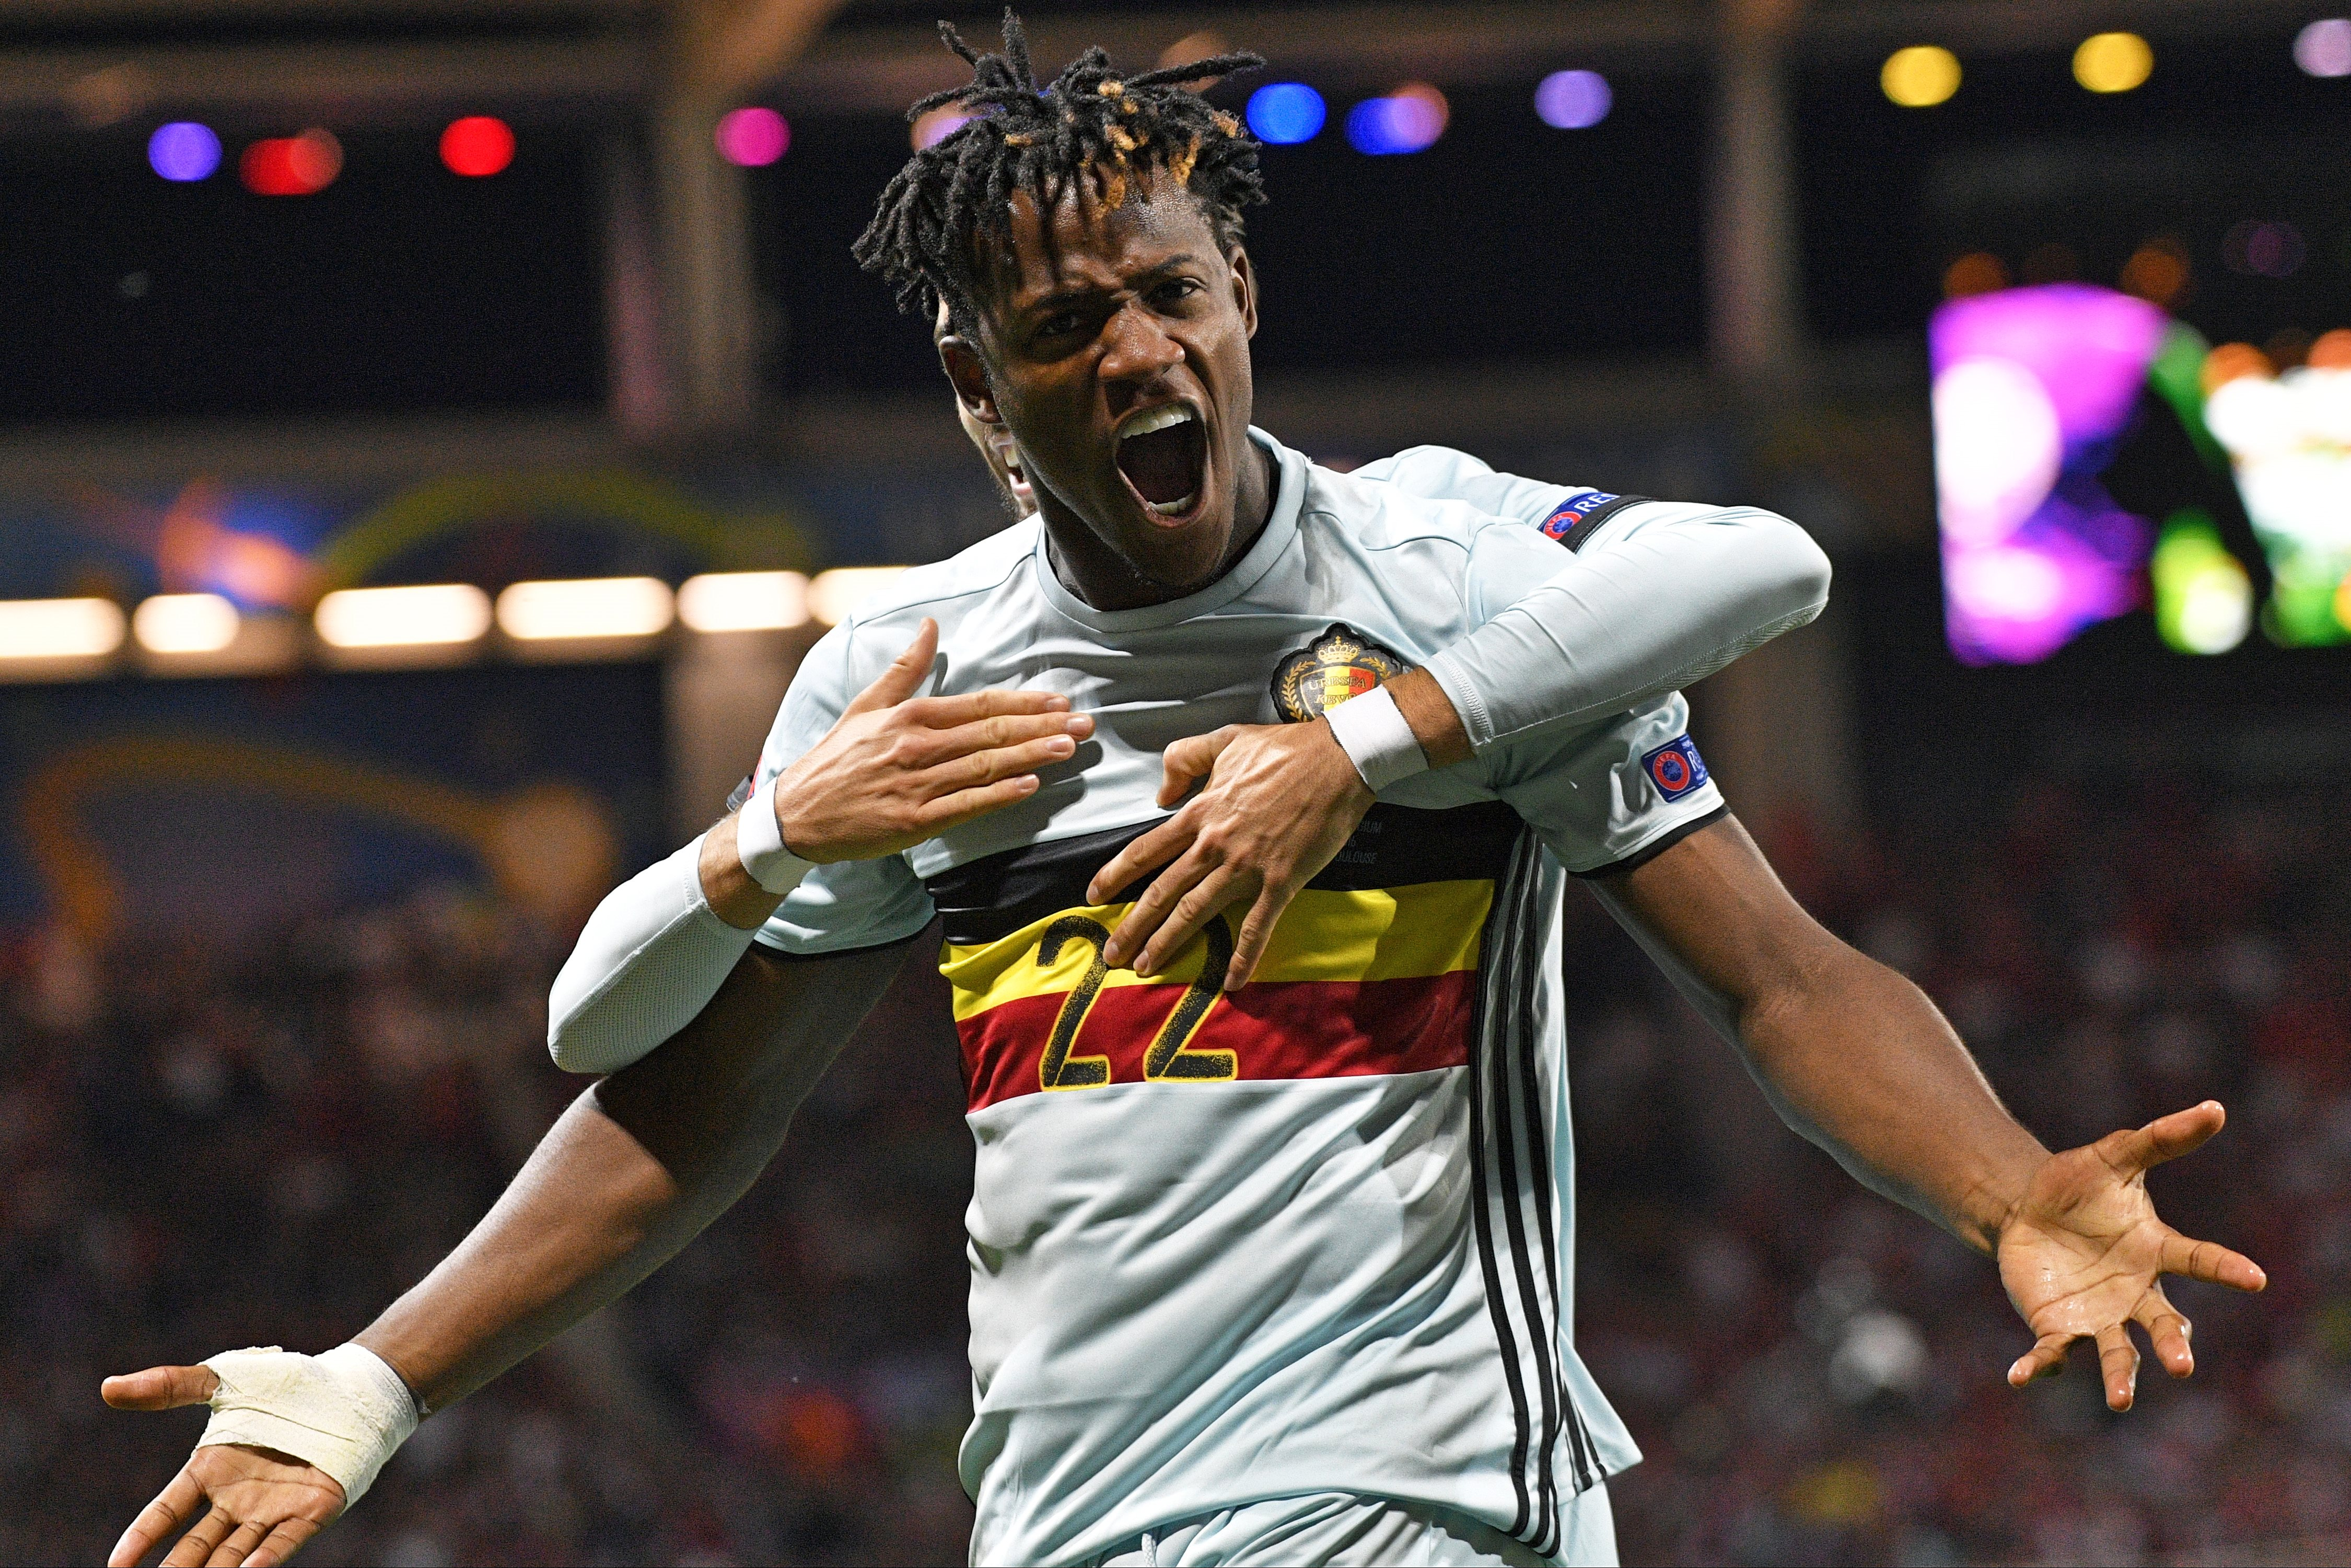 Michy Batshuayi a risk worth taking for Antonio Conte's younger, fresher Chelsea